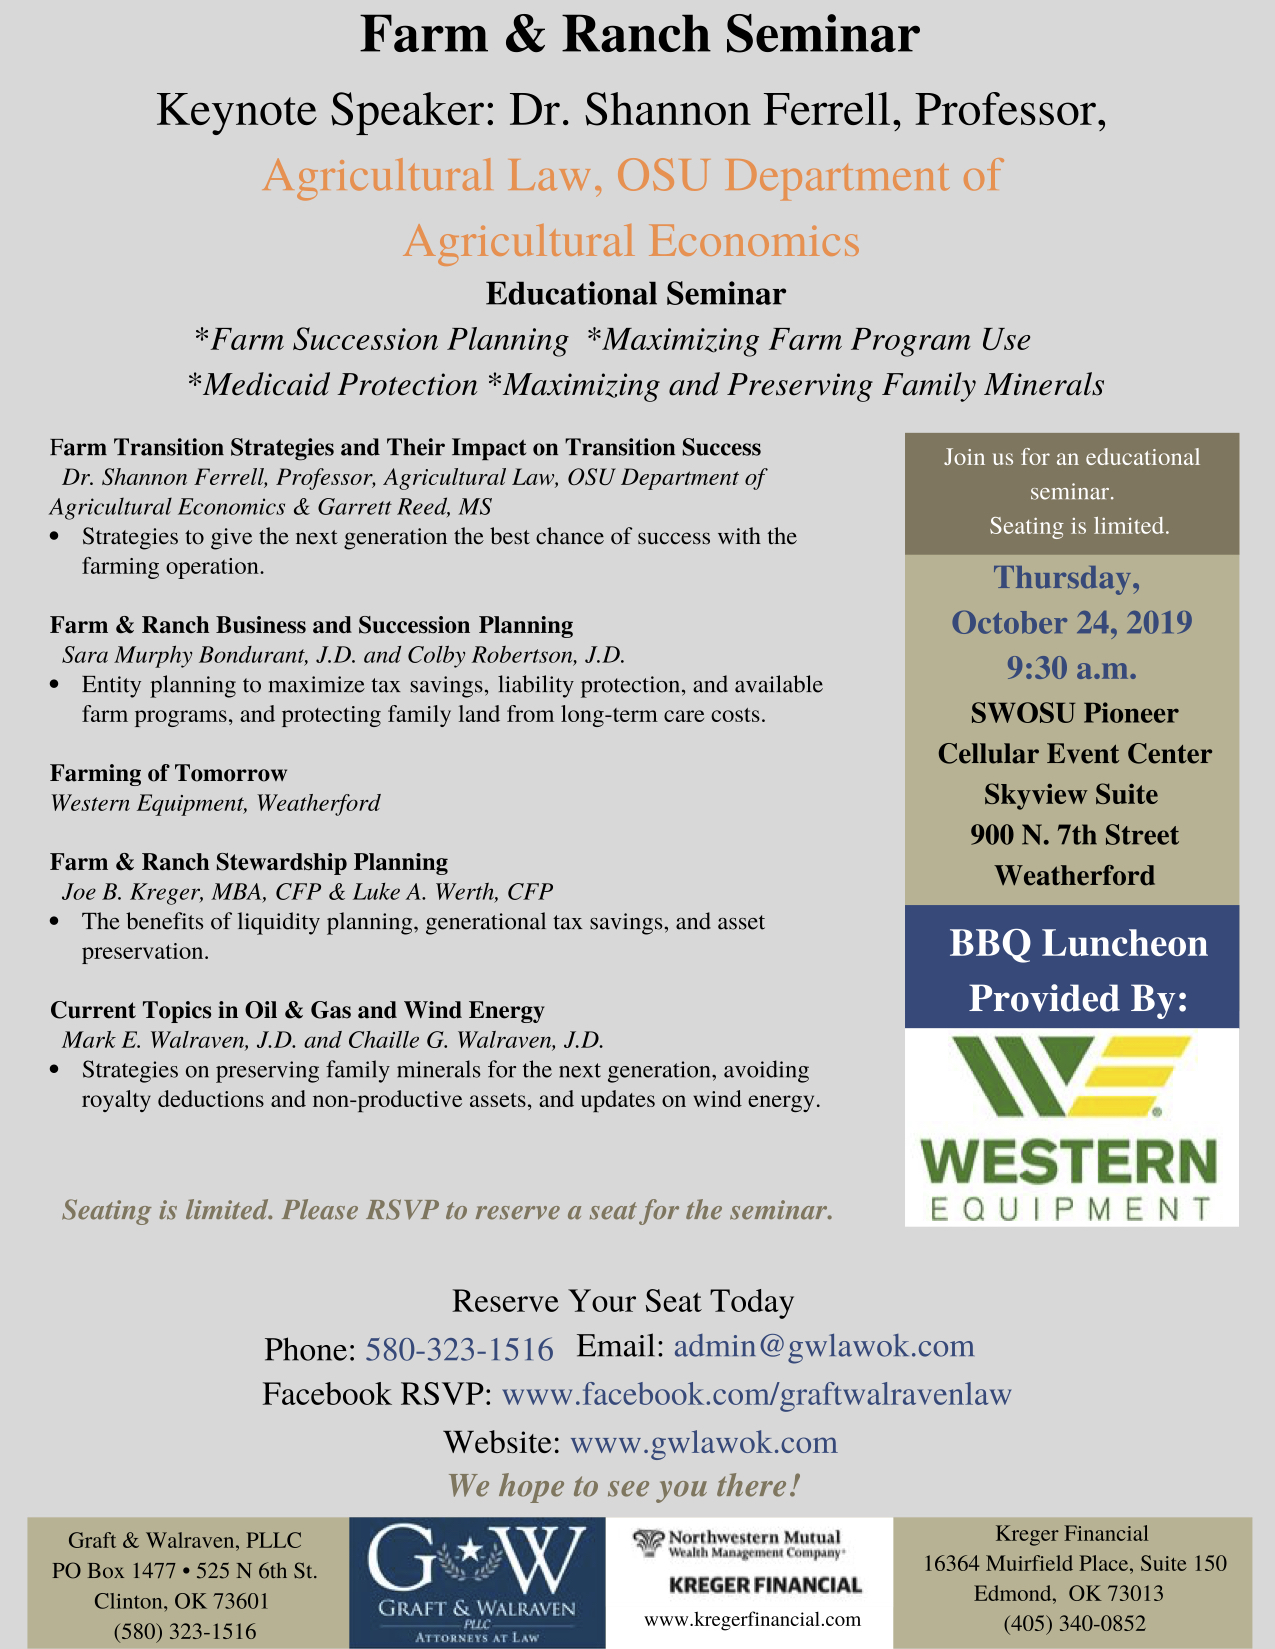 Learn about our Farm and Ranch Attorneys with this seminar.